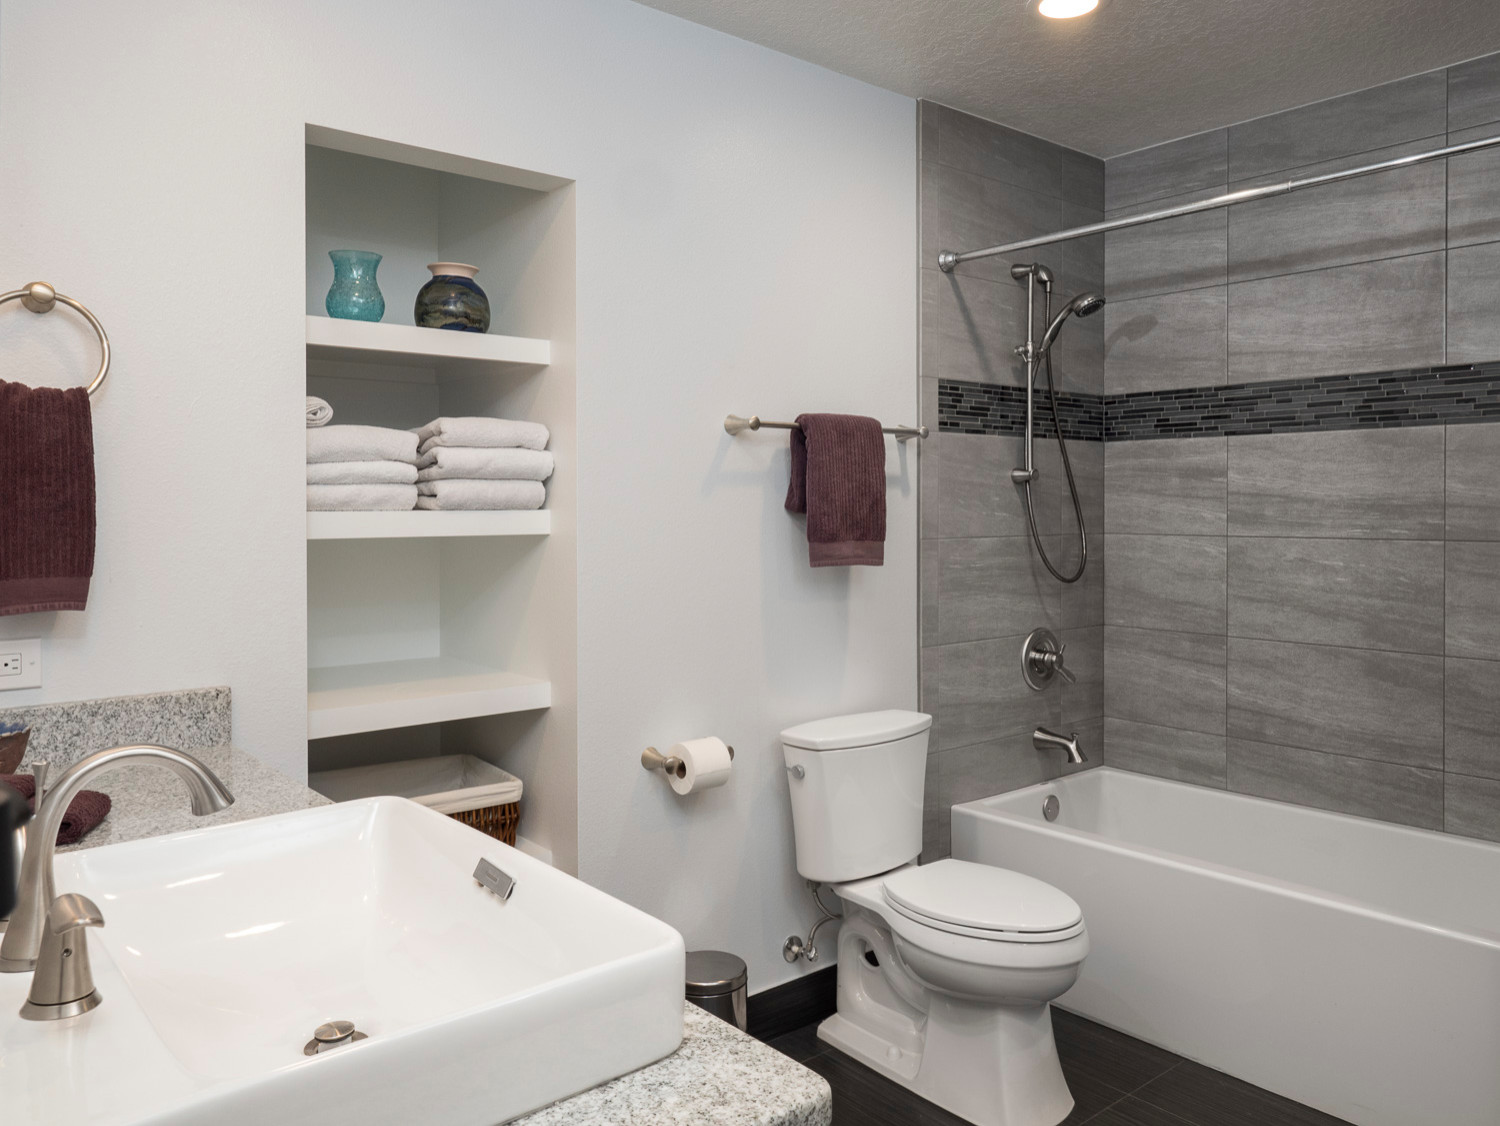 Madera Bathroom and Laundry Room Renovation Gainesville, Florida